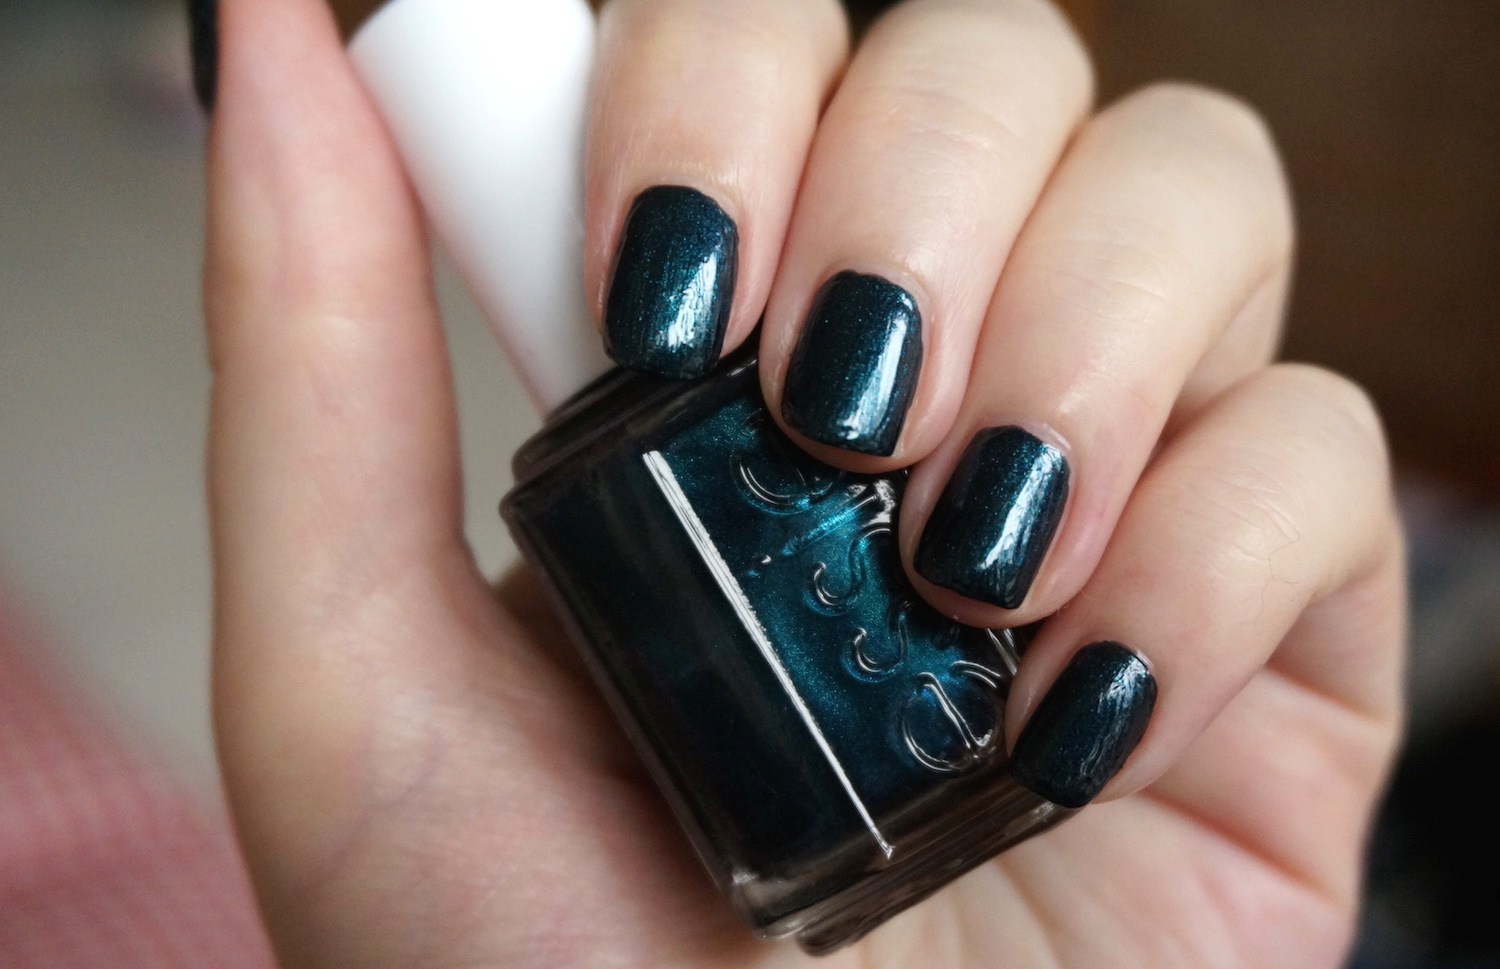 Nails Of The Day: Essie Dive Bar & Essie Shine Of The Times manicure ...